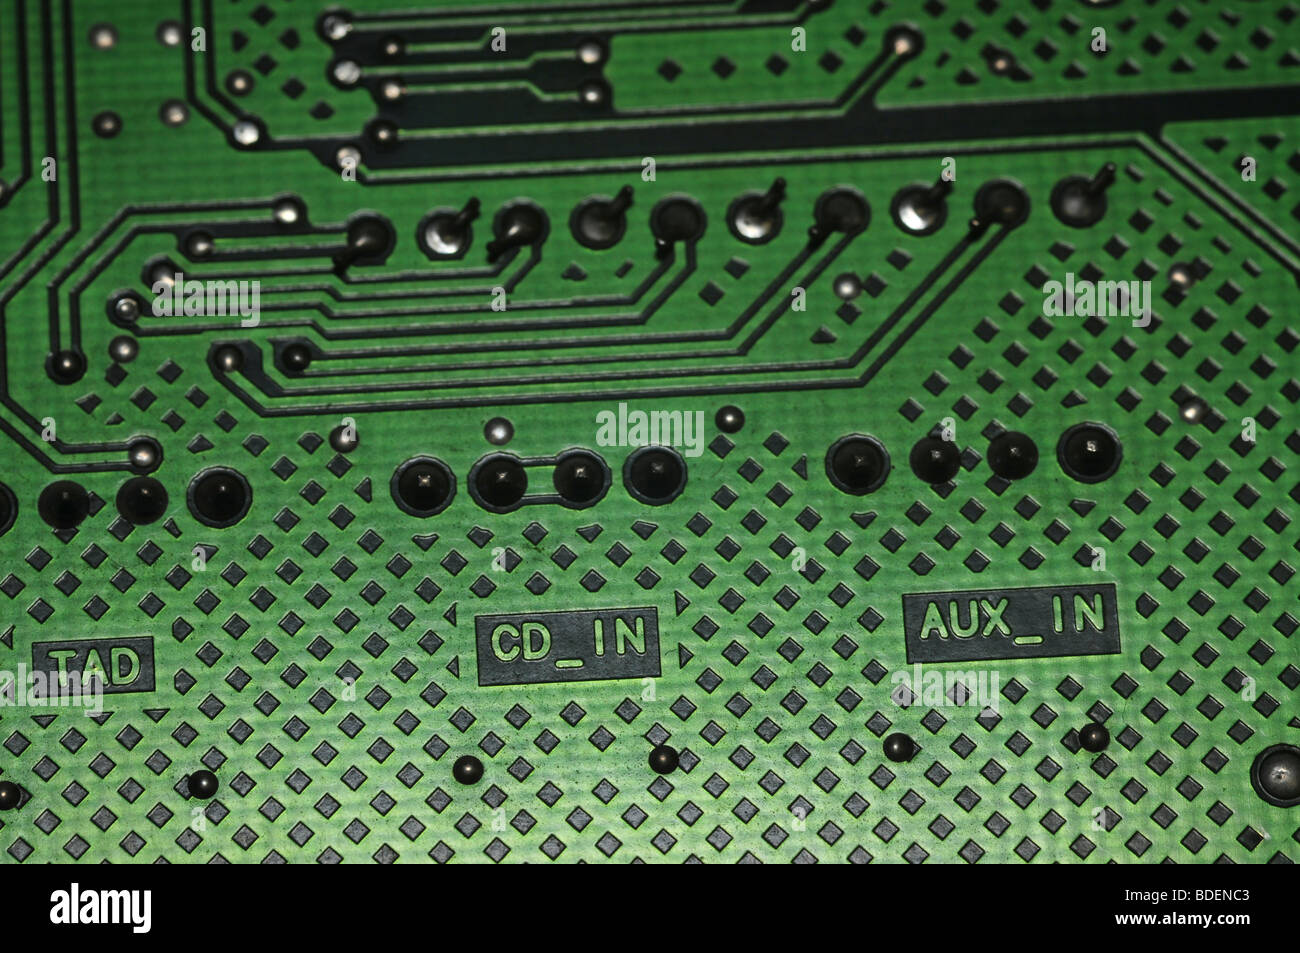 Electronic Printed Circuit Board With Computer Chips Stock Photos Microchips In Old Photo Waste From Computers Image Bdenc3 Rm